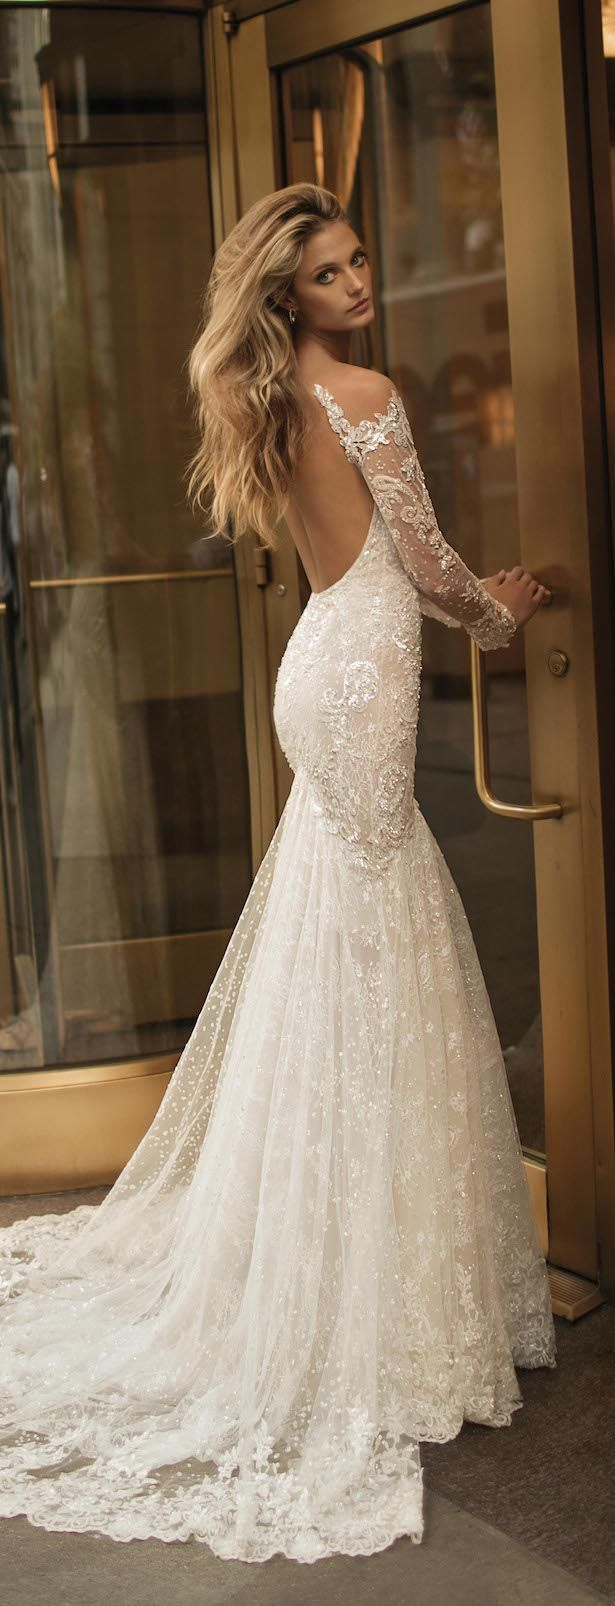 Best 25 vera wang wedding dresses ideas on pinterest for Fall lace wedding dresses